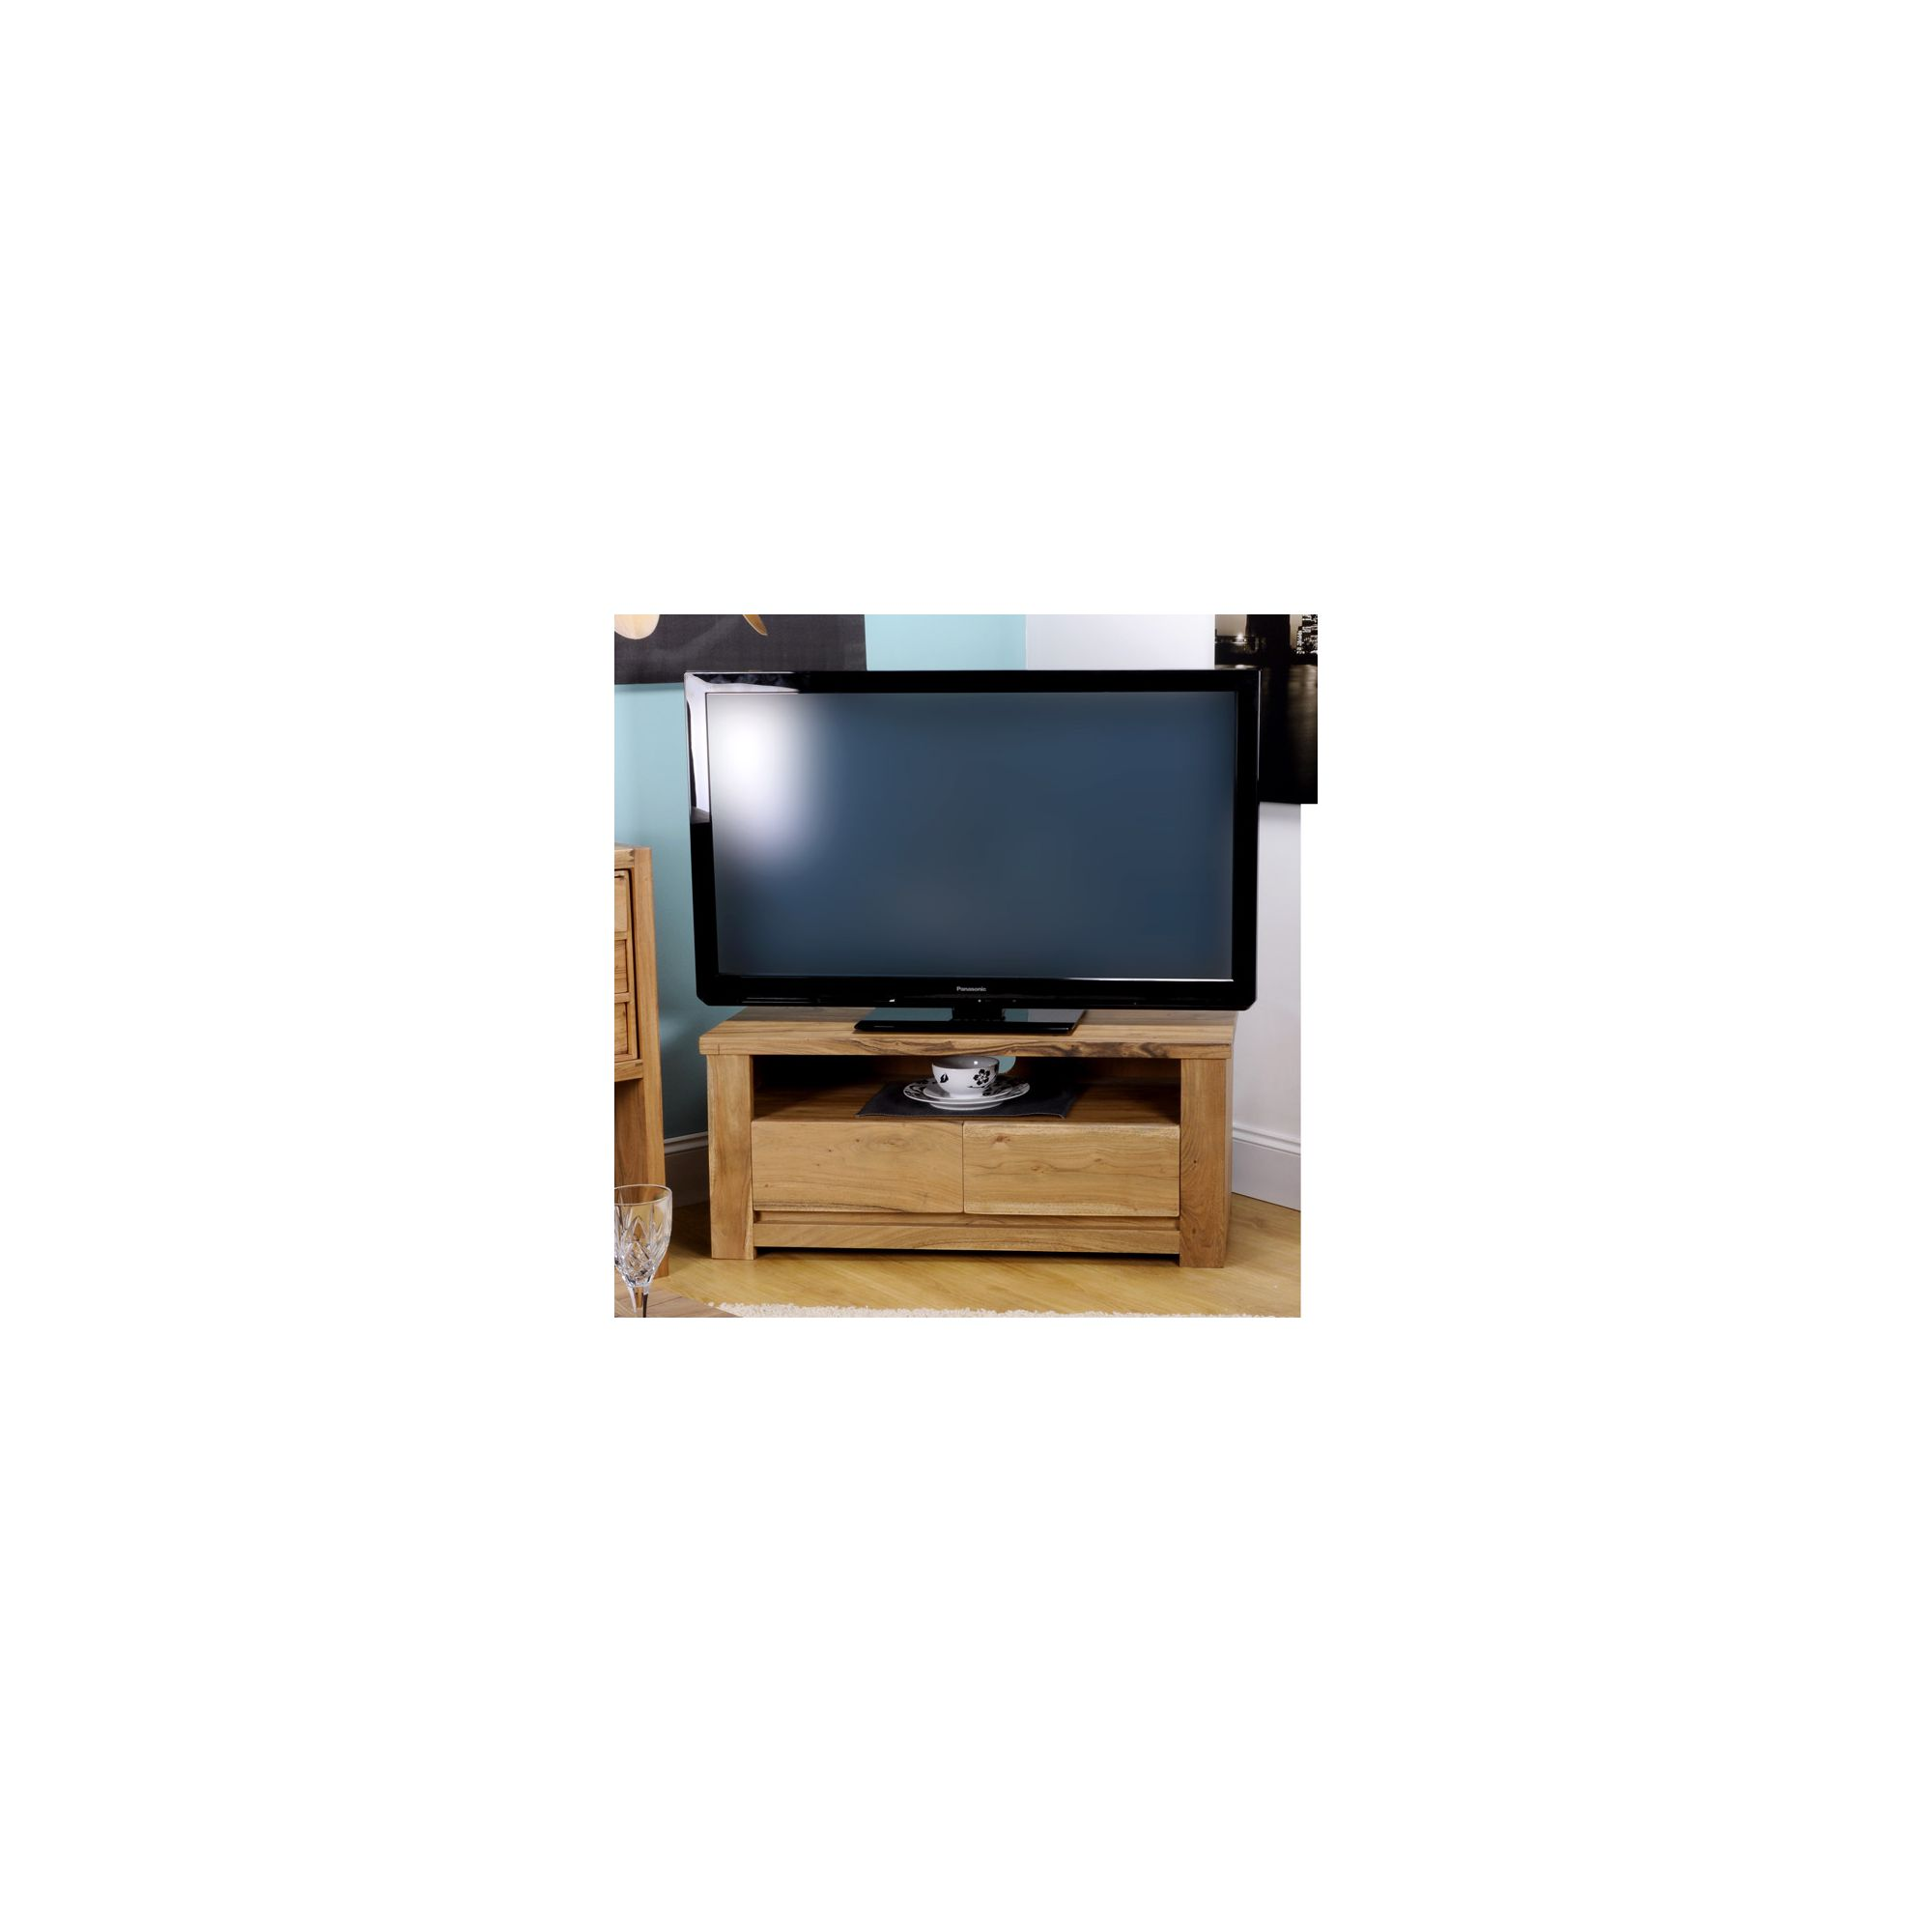 Shankar Enterprises Alwar TV Stand at Tesco Direct